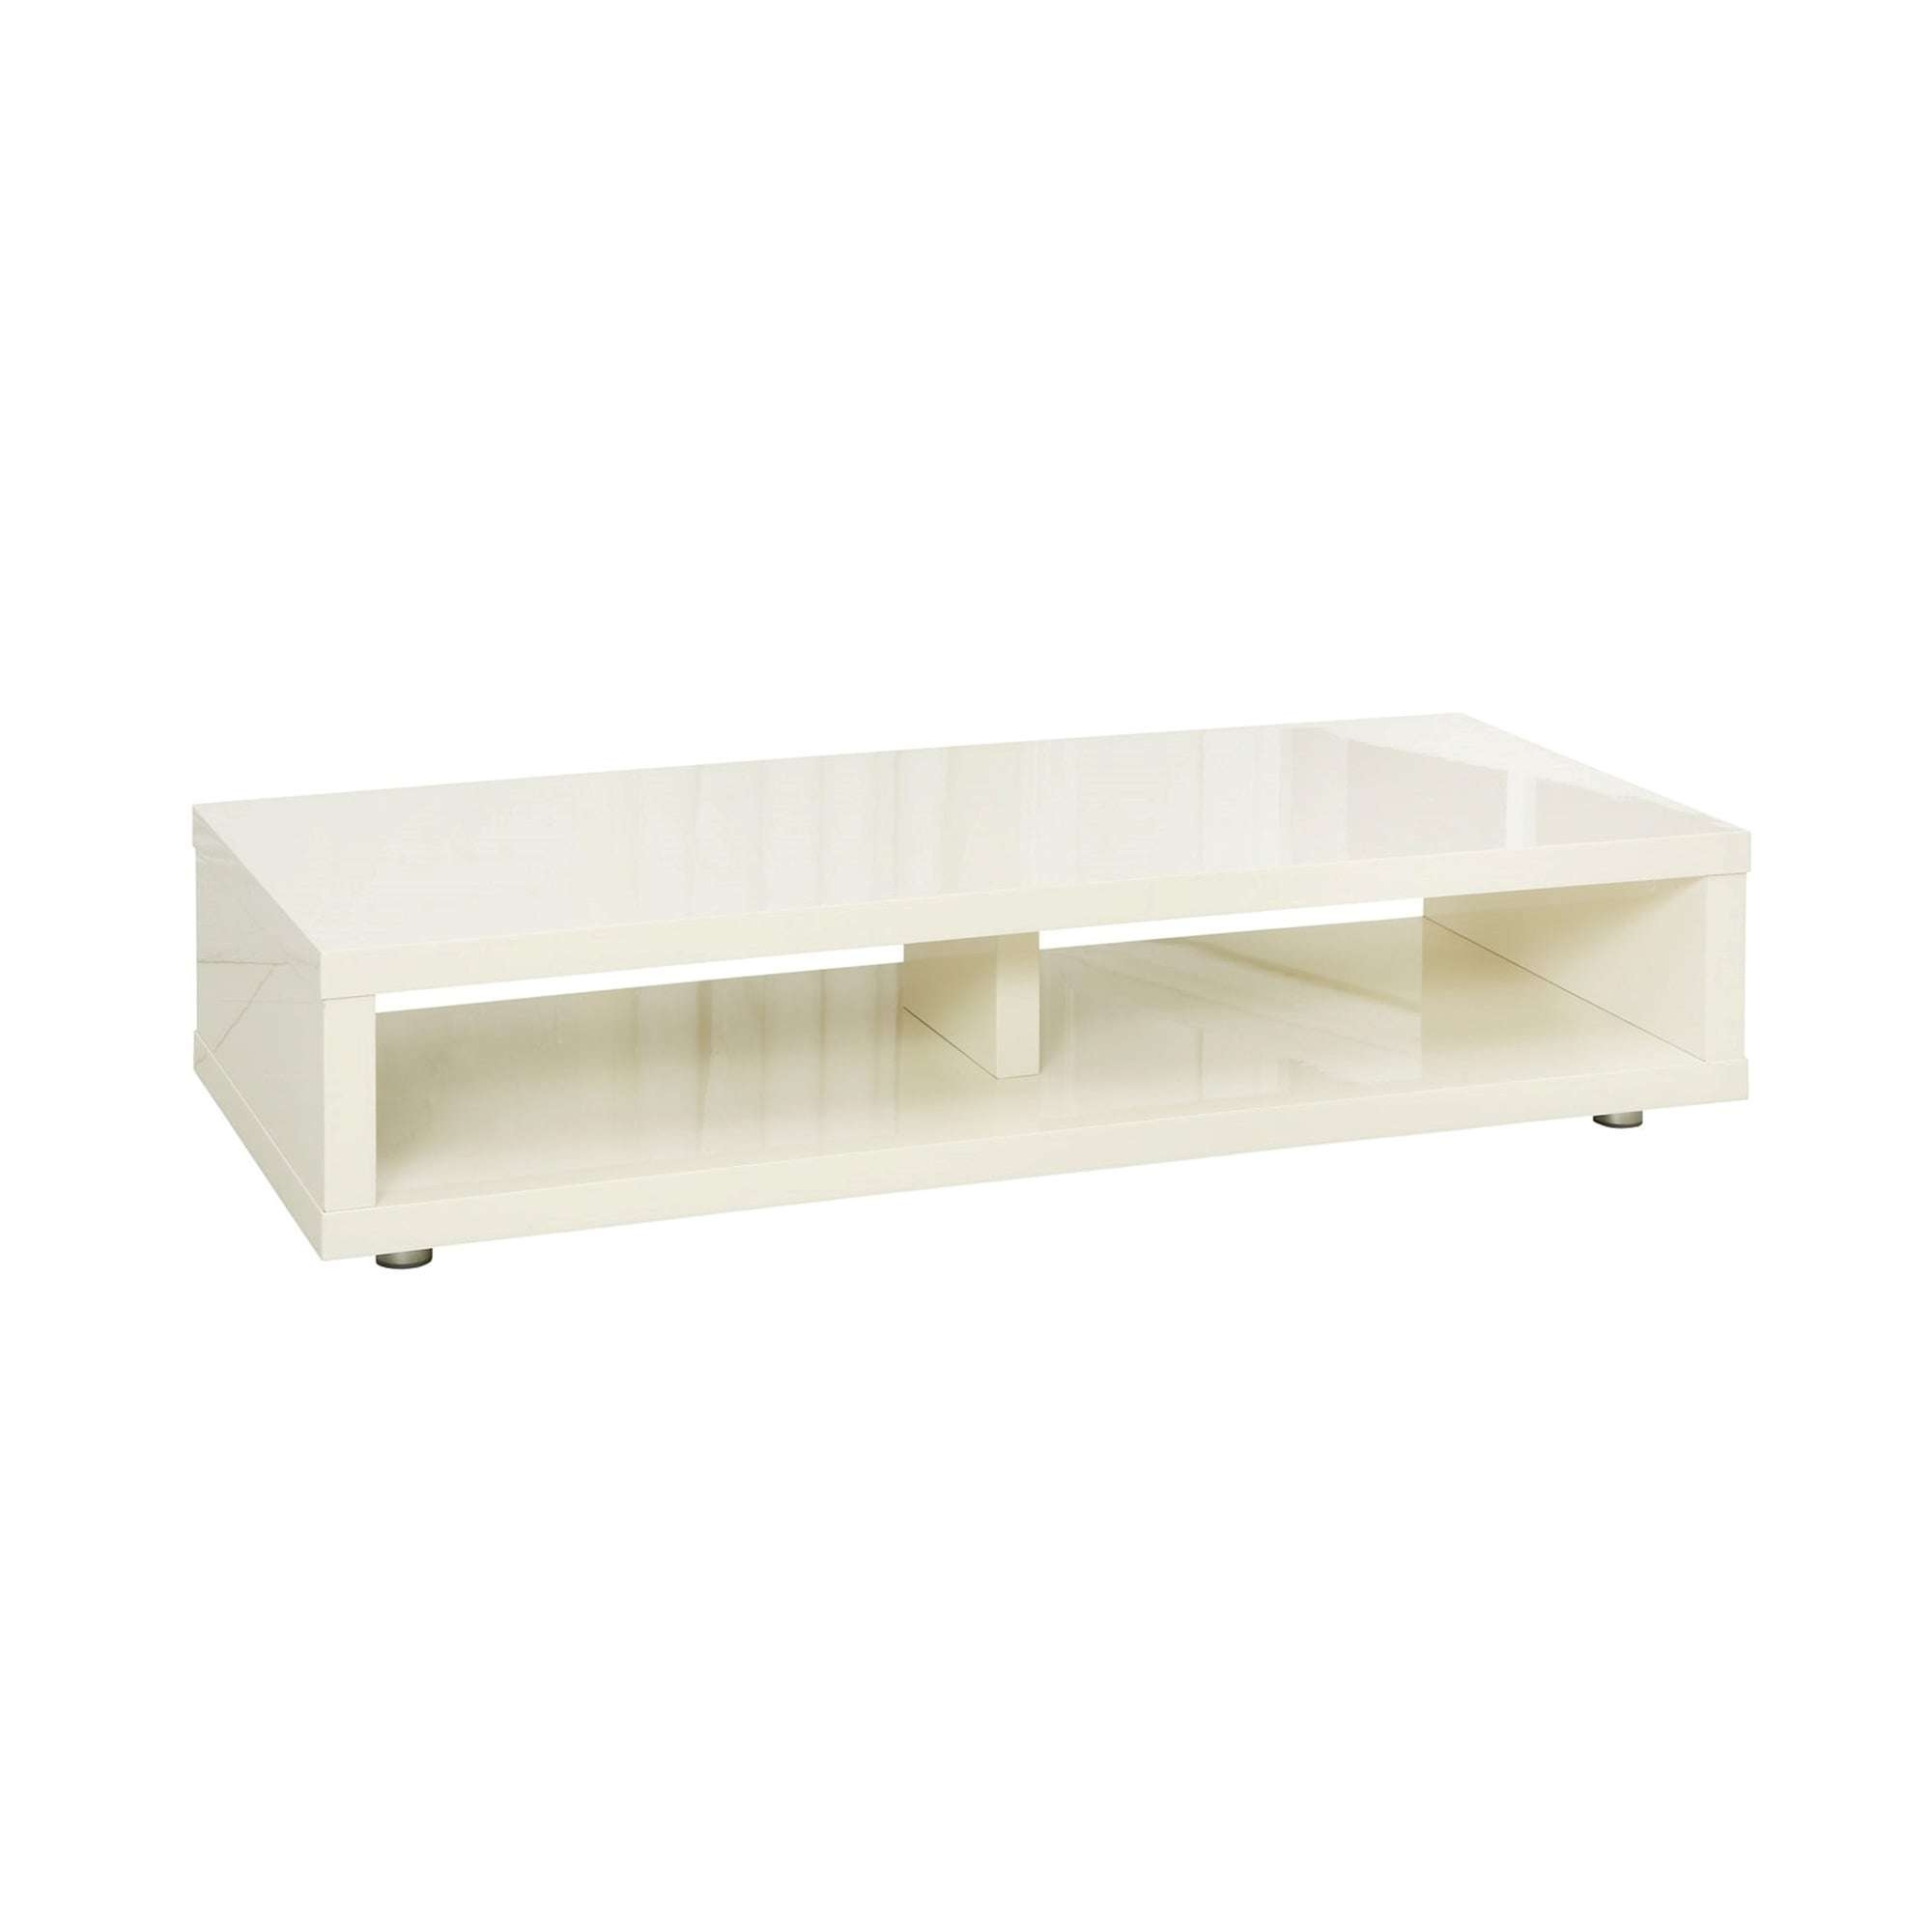 Lpd Furniture Puro Cream High Gloss Tv Stand | Leader Stores Within Cream Gloss Tv Stands (View 7 of 15)